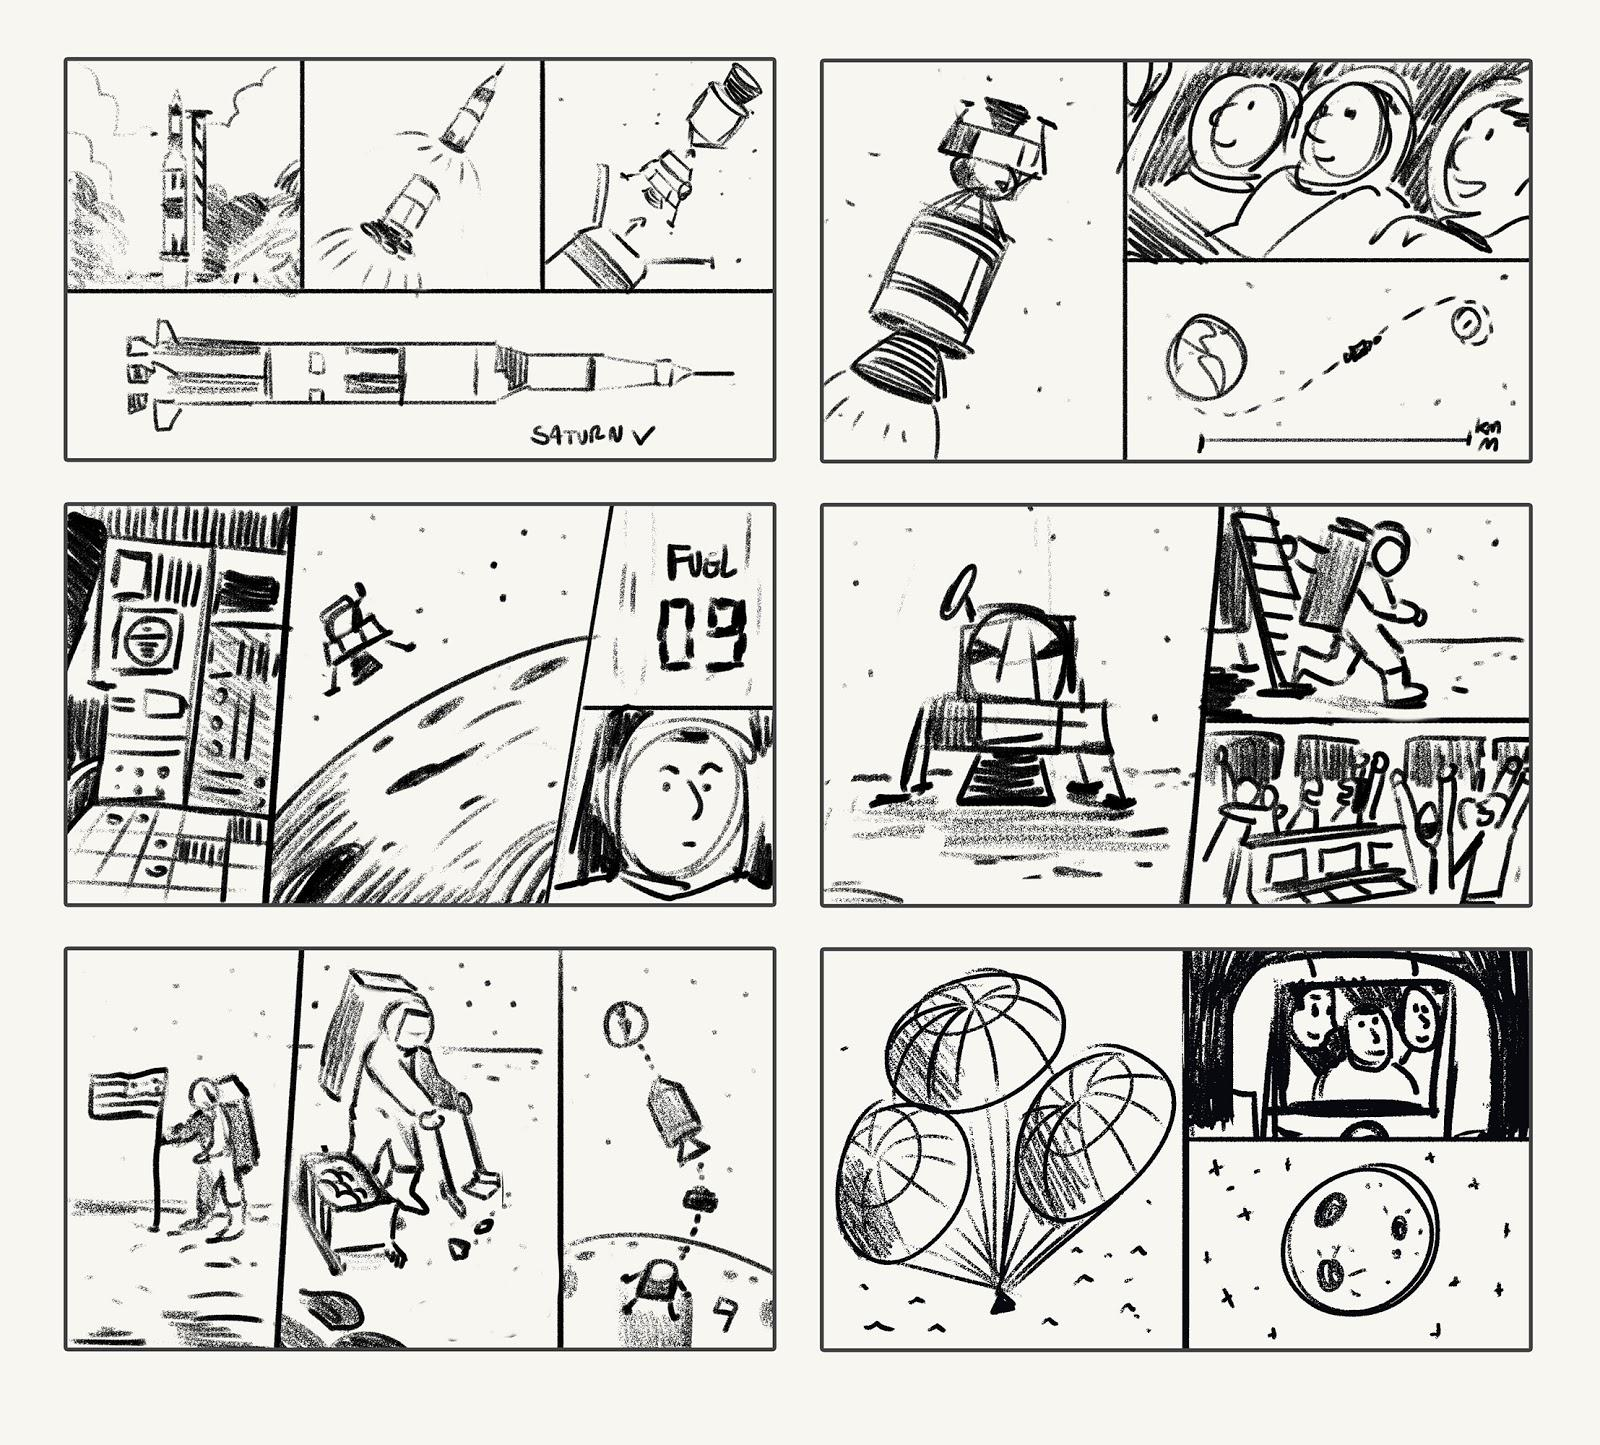 apollo-11-mission doodle storyboard